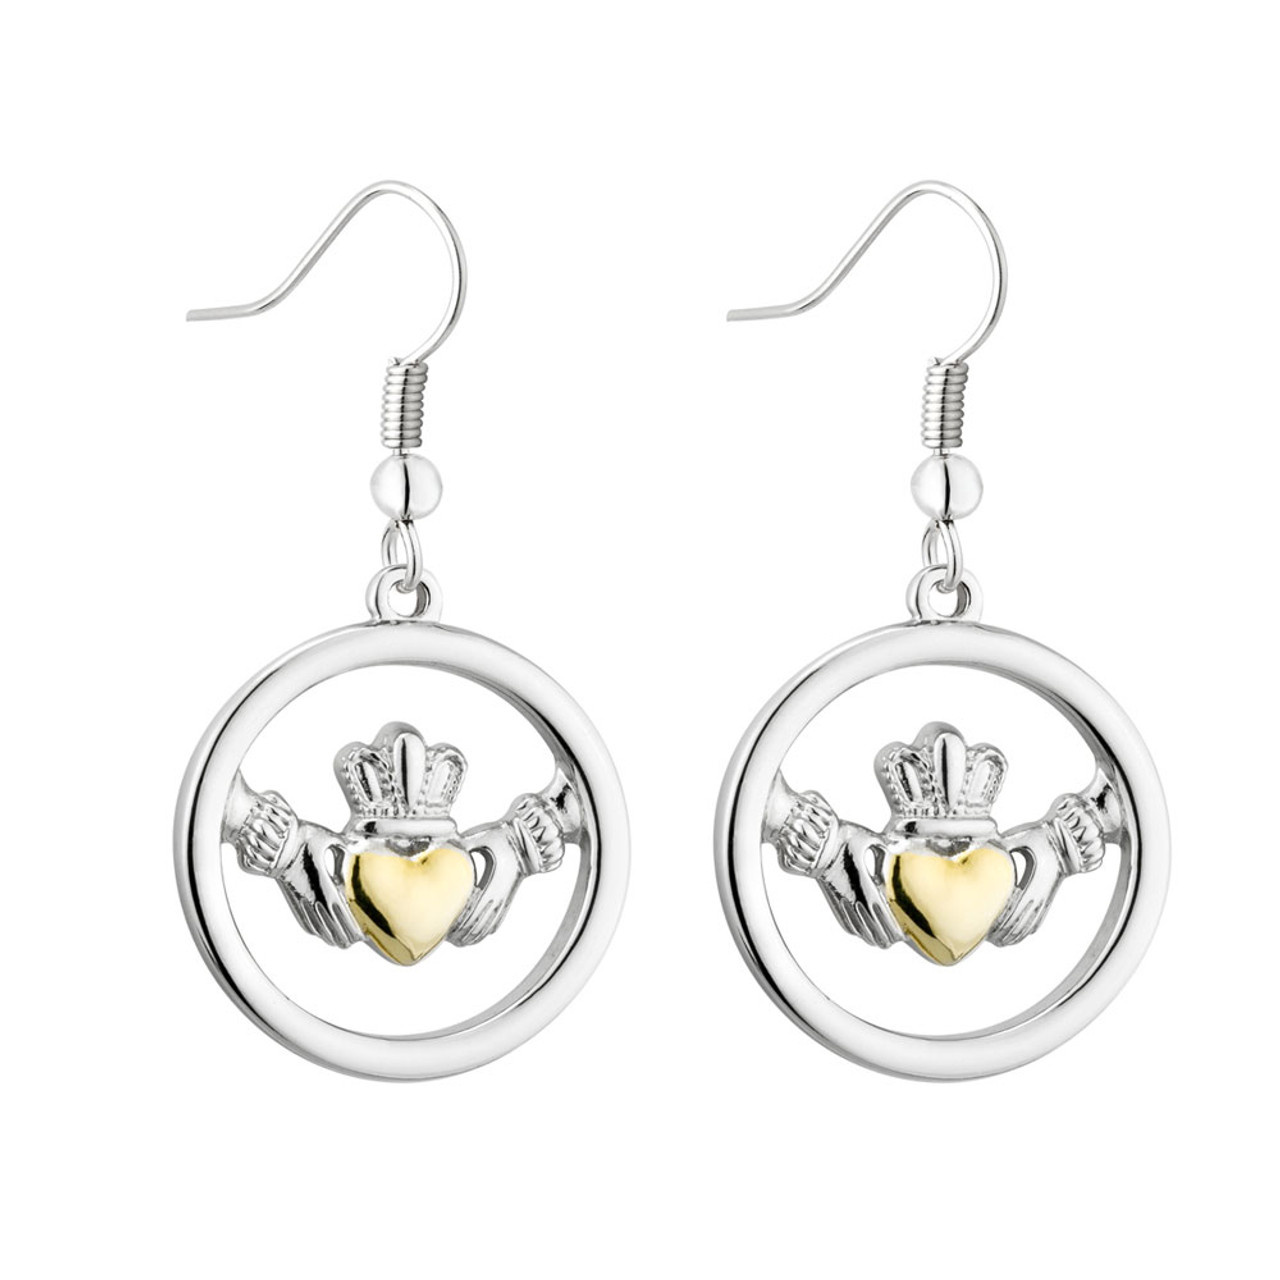 Large Two Toned Claddagh Earrings